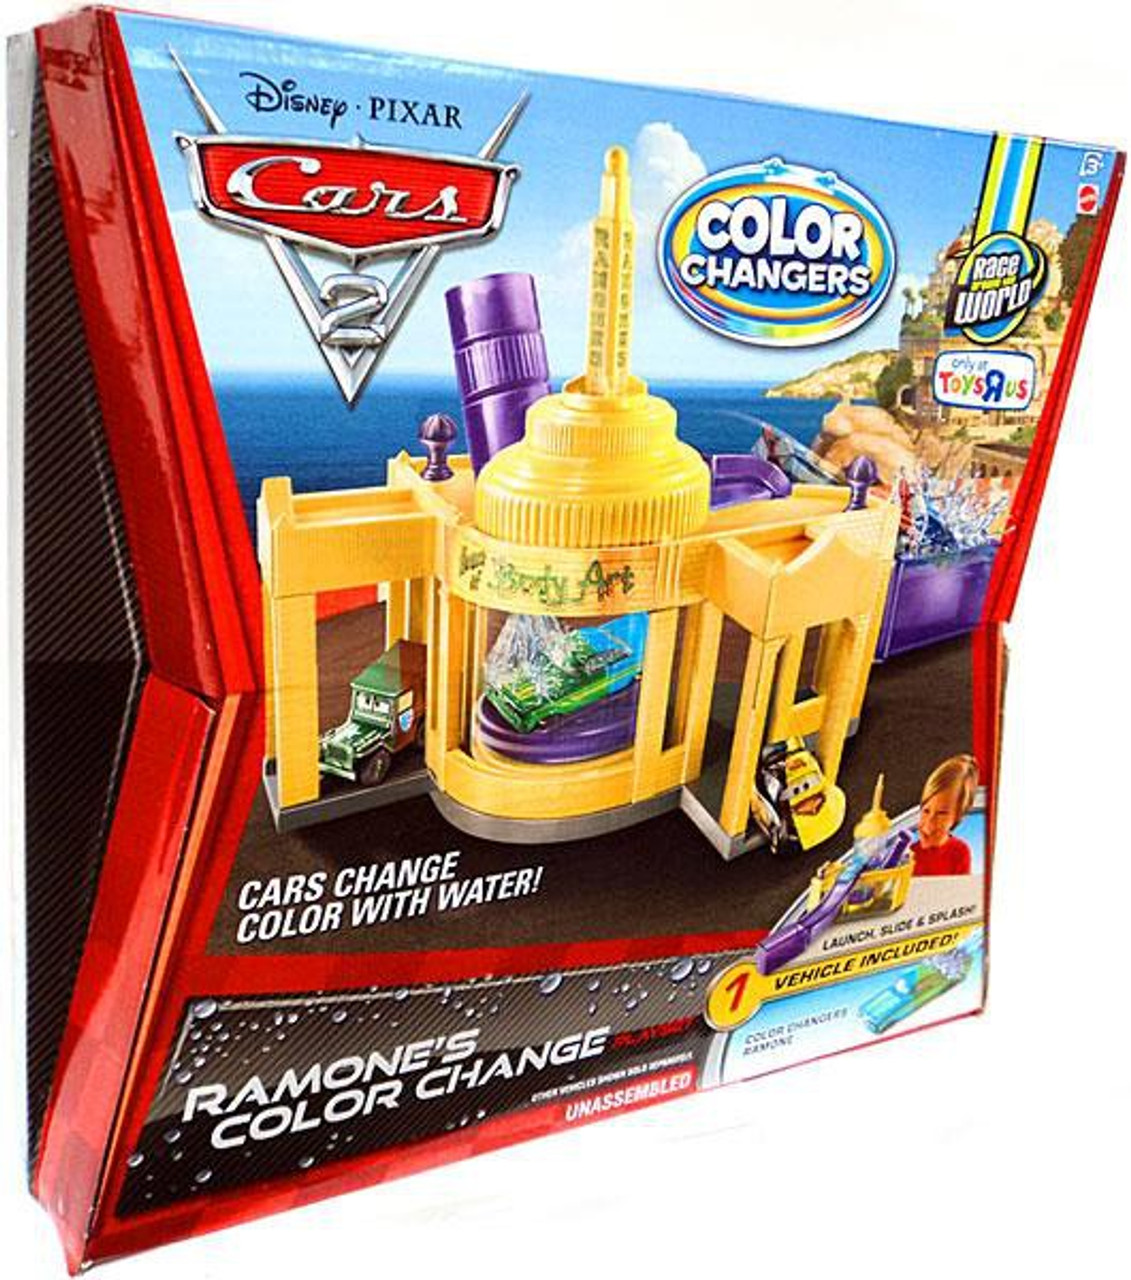 Disney Cars Cars 2 Color Changers Ramone's Color Change Exclusive Playset